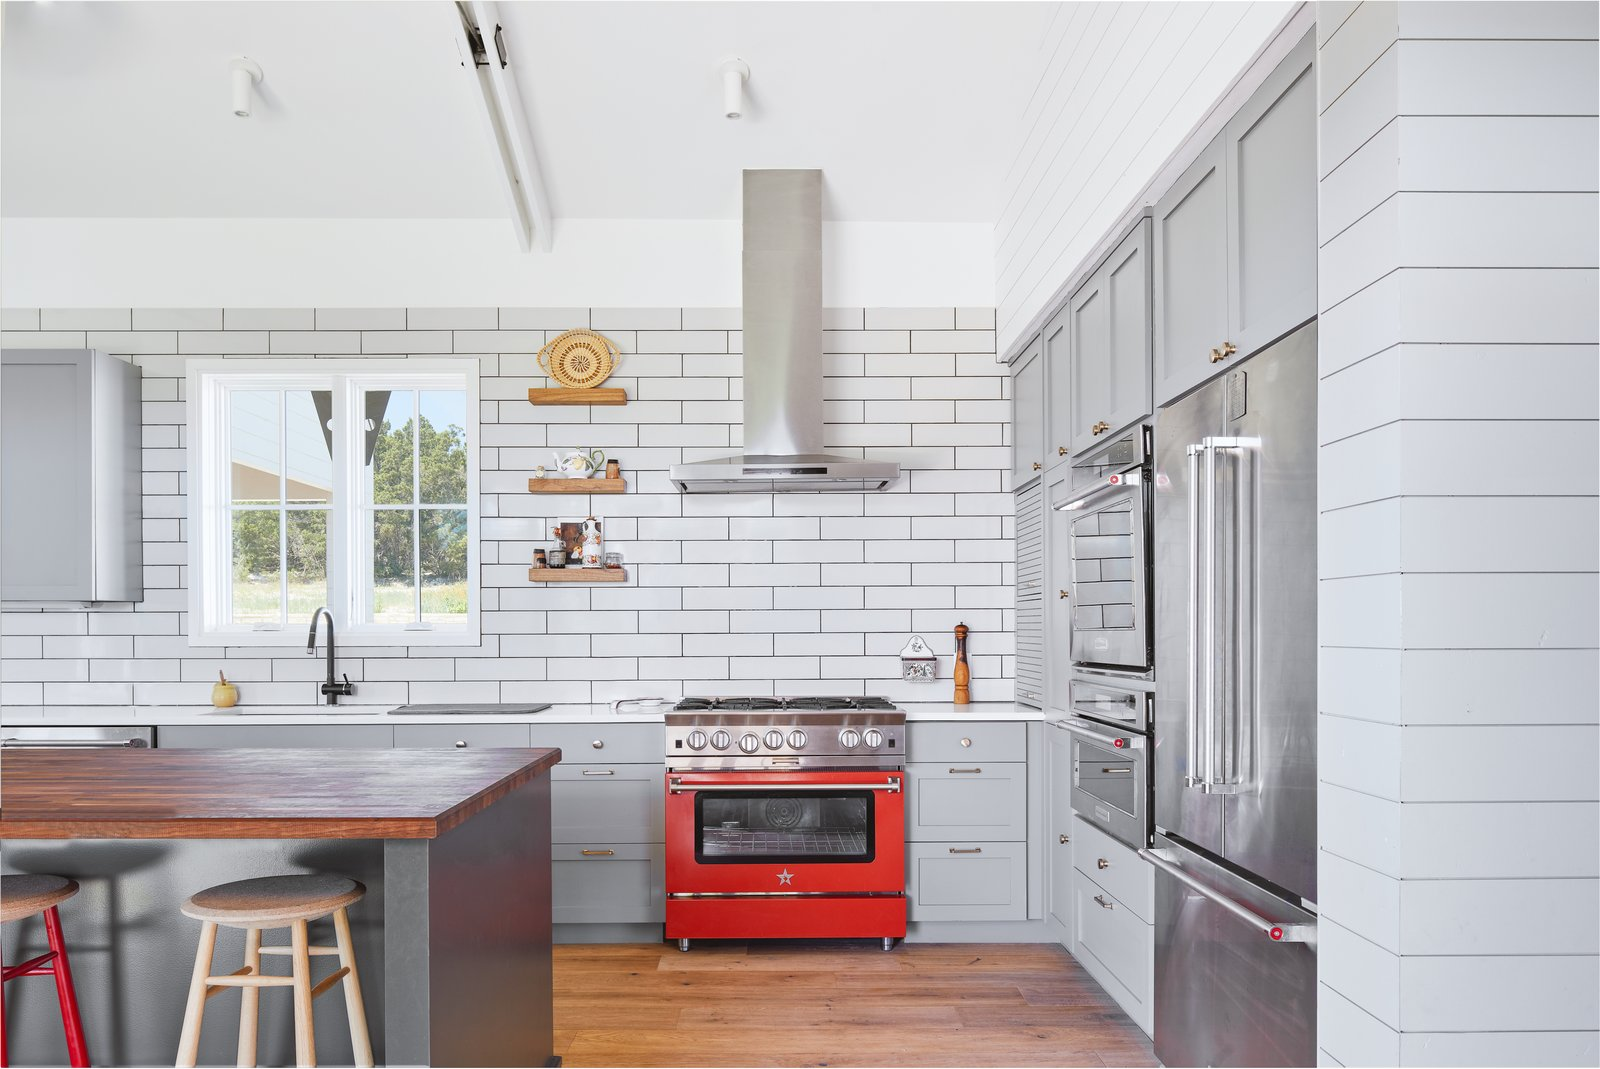 Kitchen, Wall Oven, Refrigerator, Wood, Range Hood, Range, Microwave, Quartzite, Wood, Medium Hardwood, Ceiling, Undermount, and Subway Tile The splash of red repeats itself in the kitchen oven.  Best Kitchen Refrigerator Wood Quartzite Photos